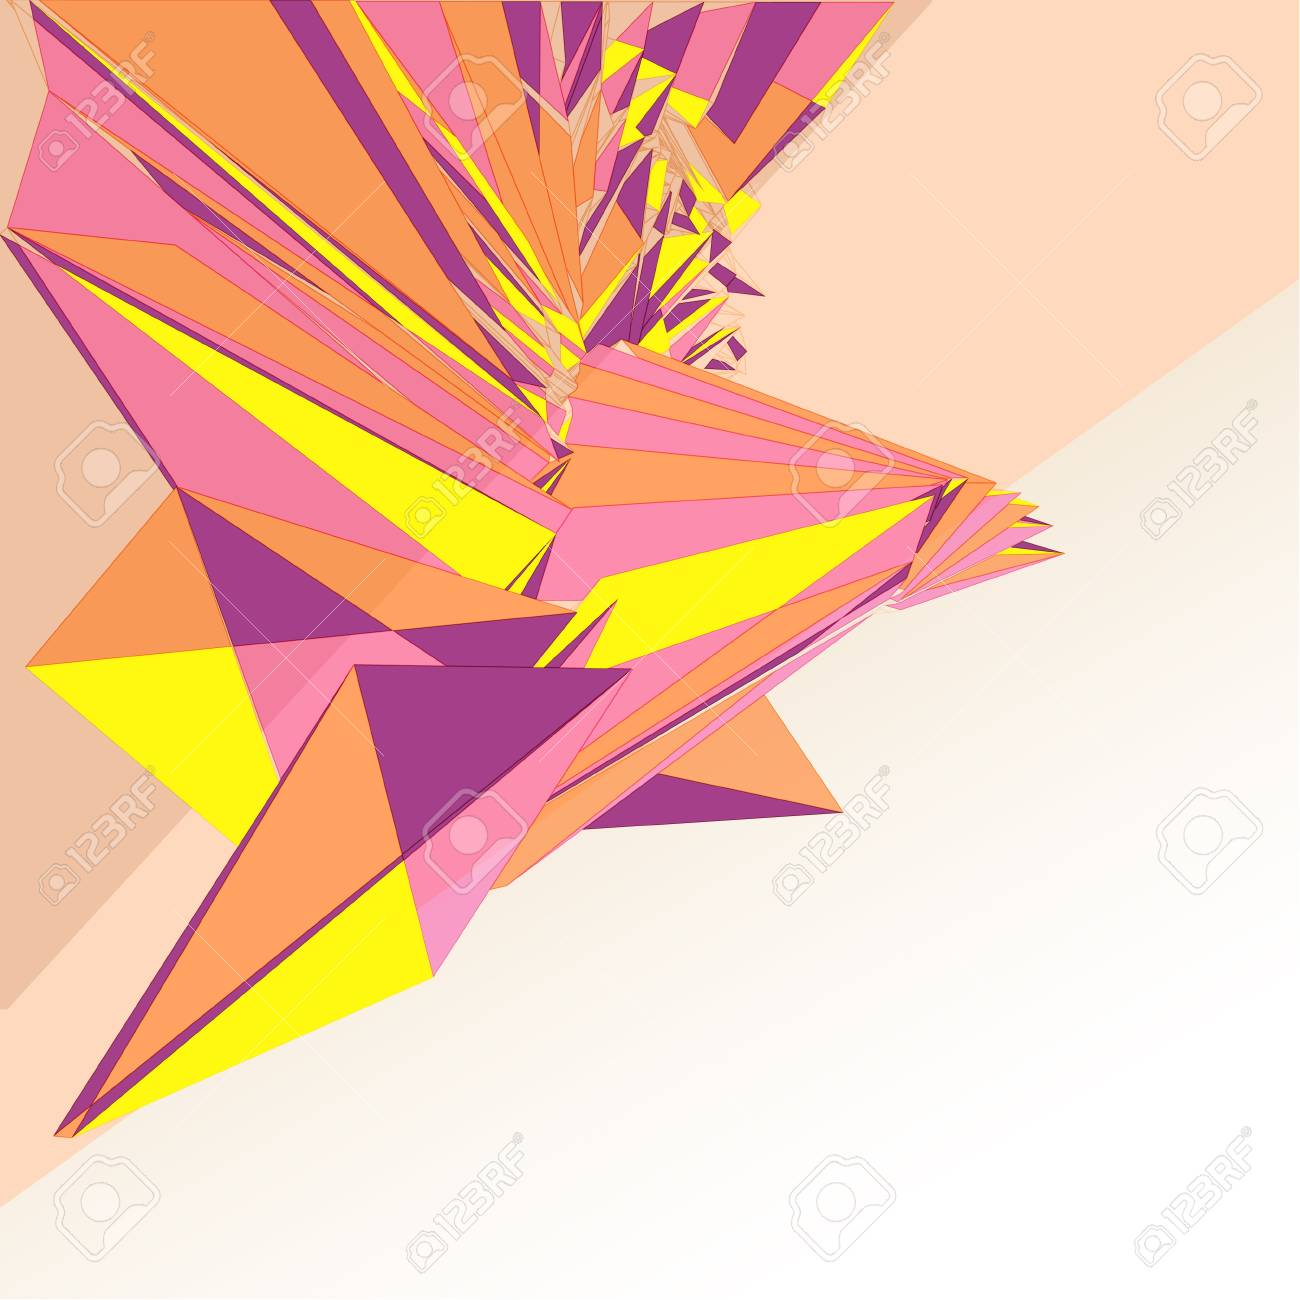 triangular graphic structure with textspace vector illustration Stock Vector - 18555083